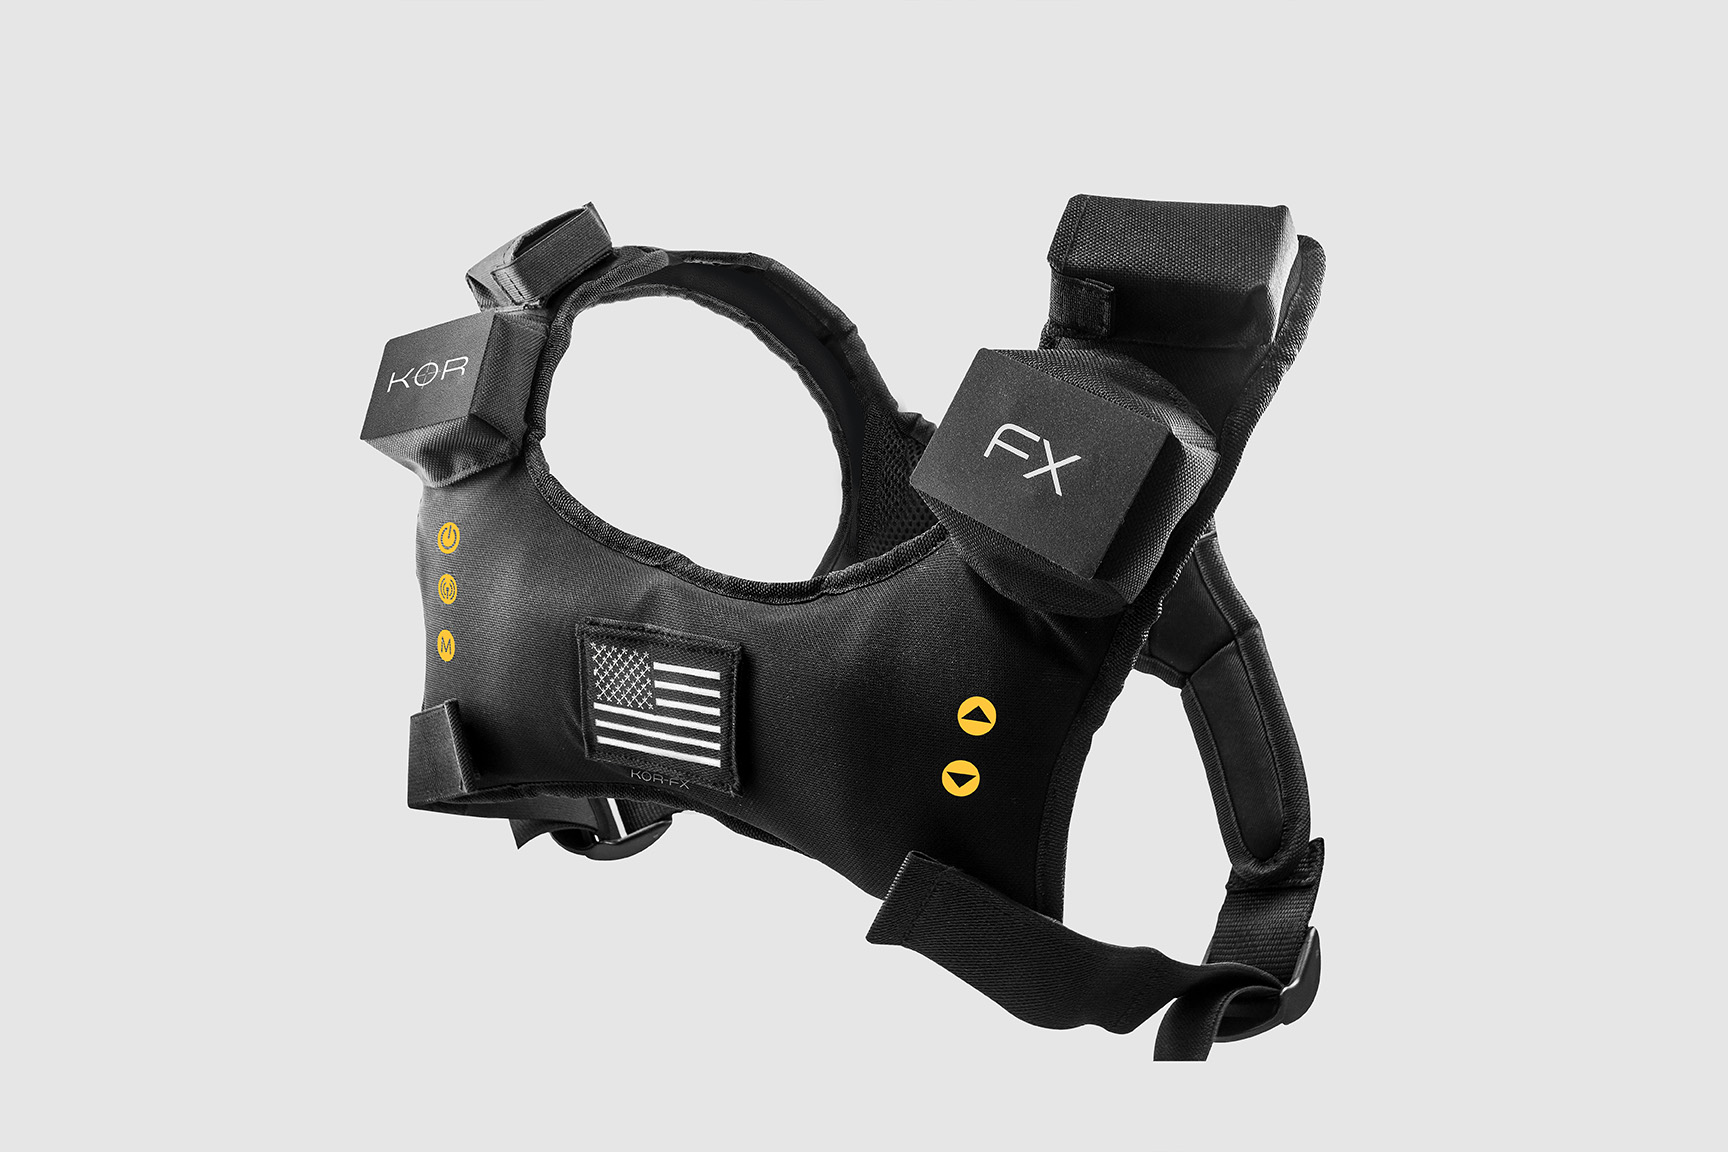 Wearable KOR-FX vest for audio feedback